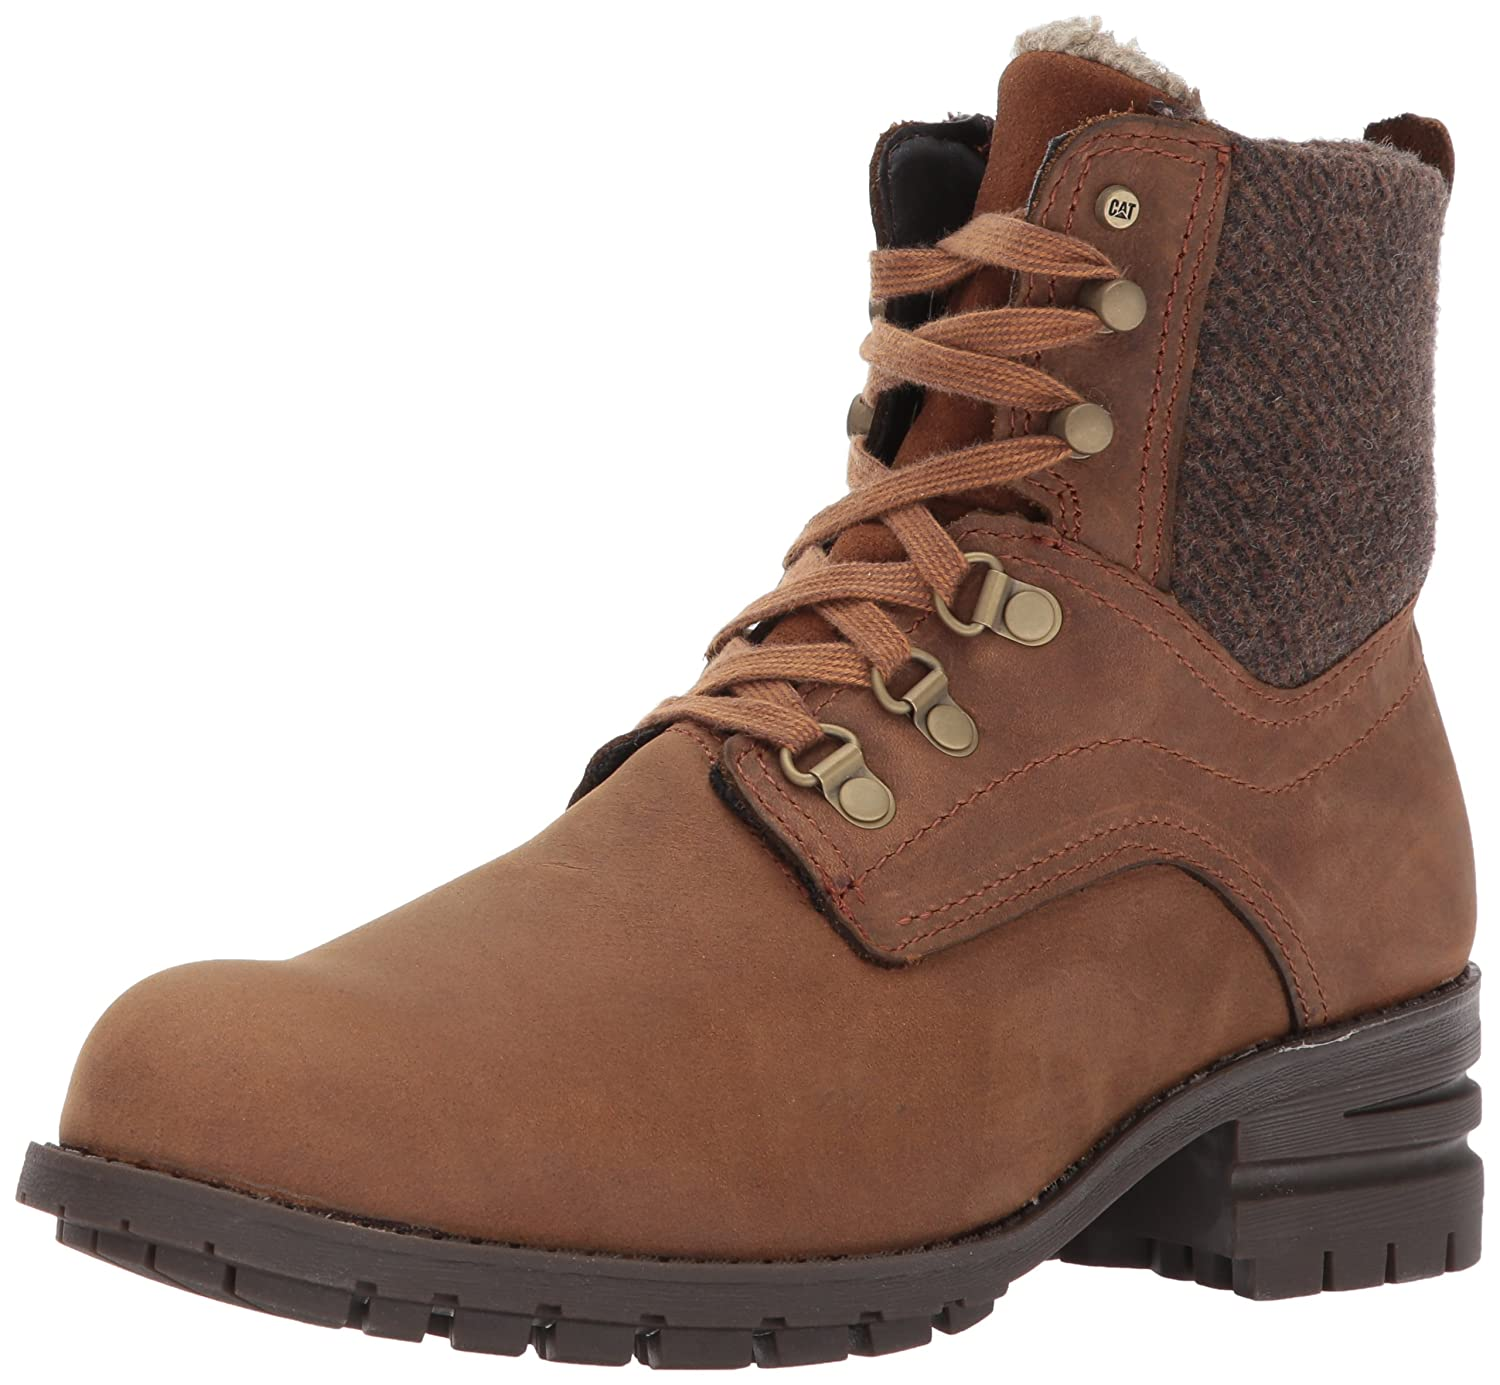 Caterpillar Women's Taylor Waterproof Boot B01N0XVDU9 6 B(M) US|Womens Brown Sugar